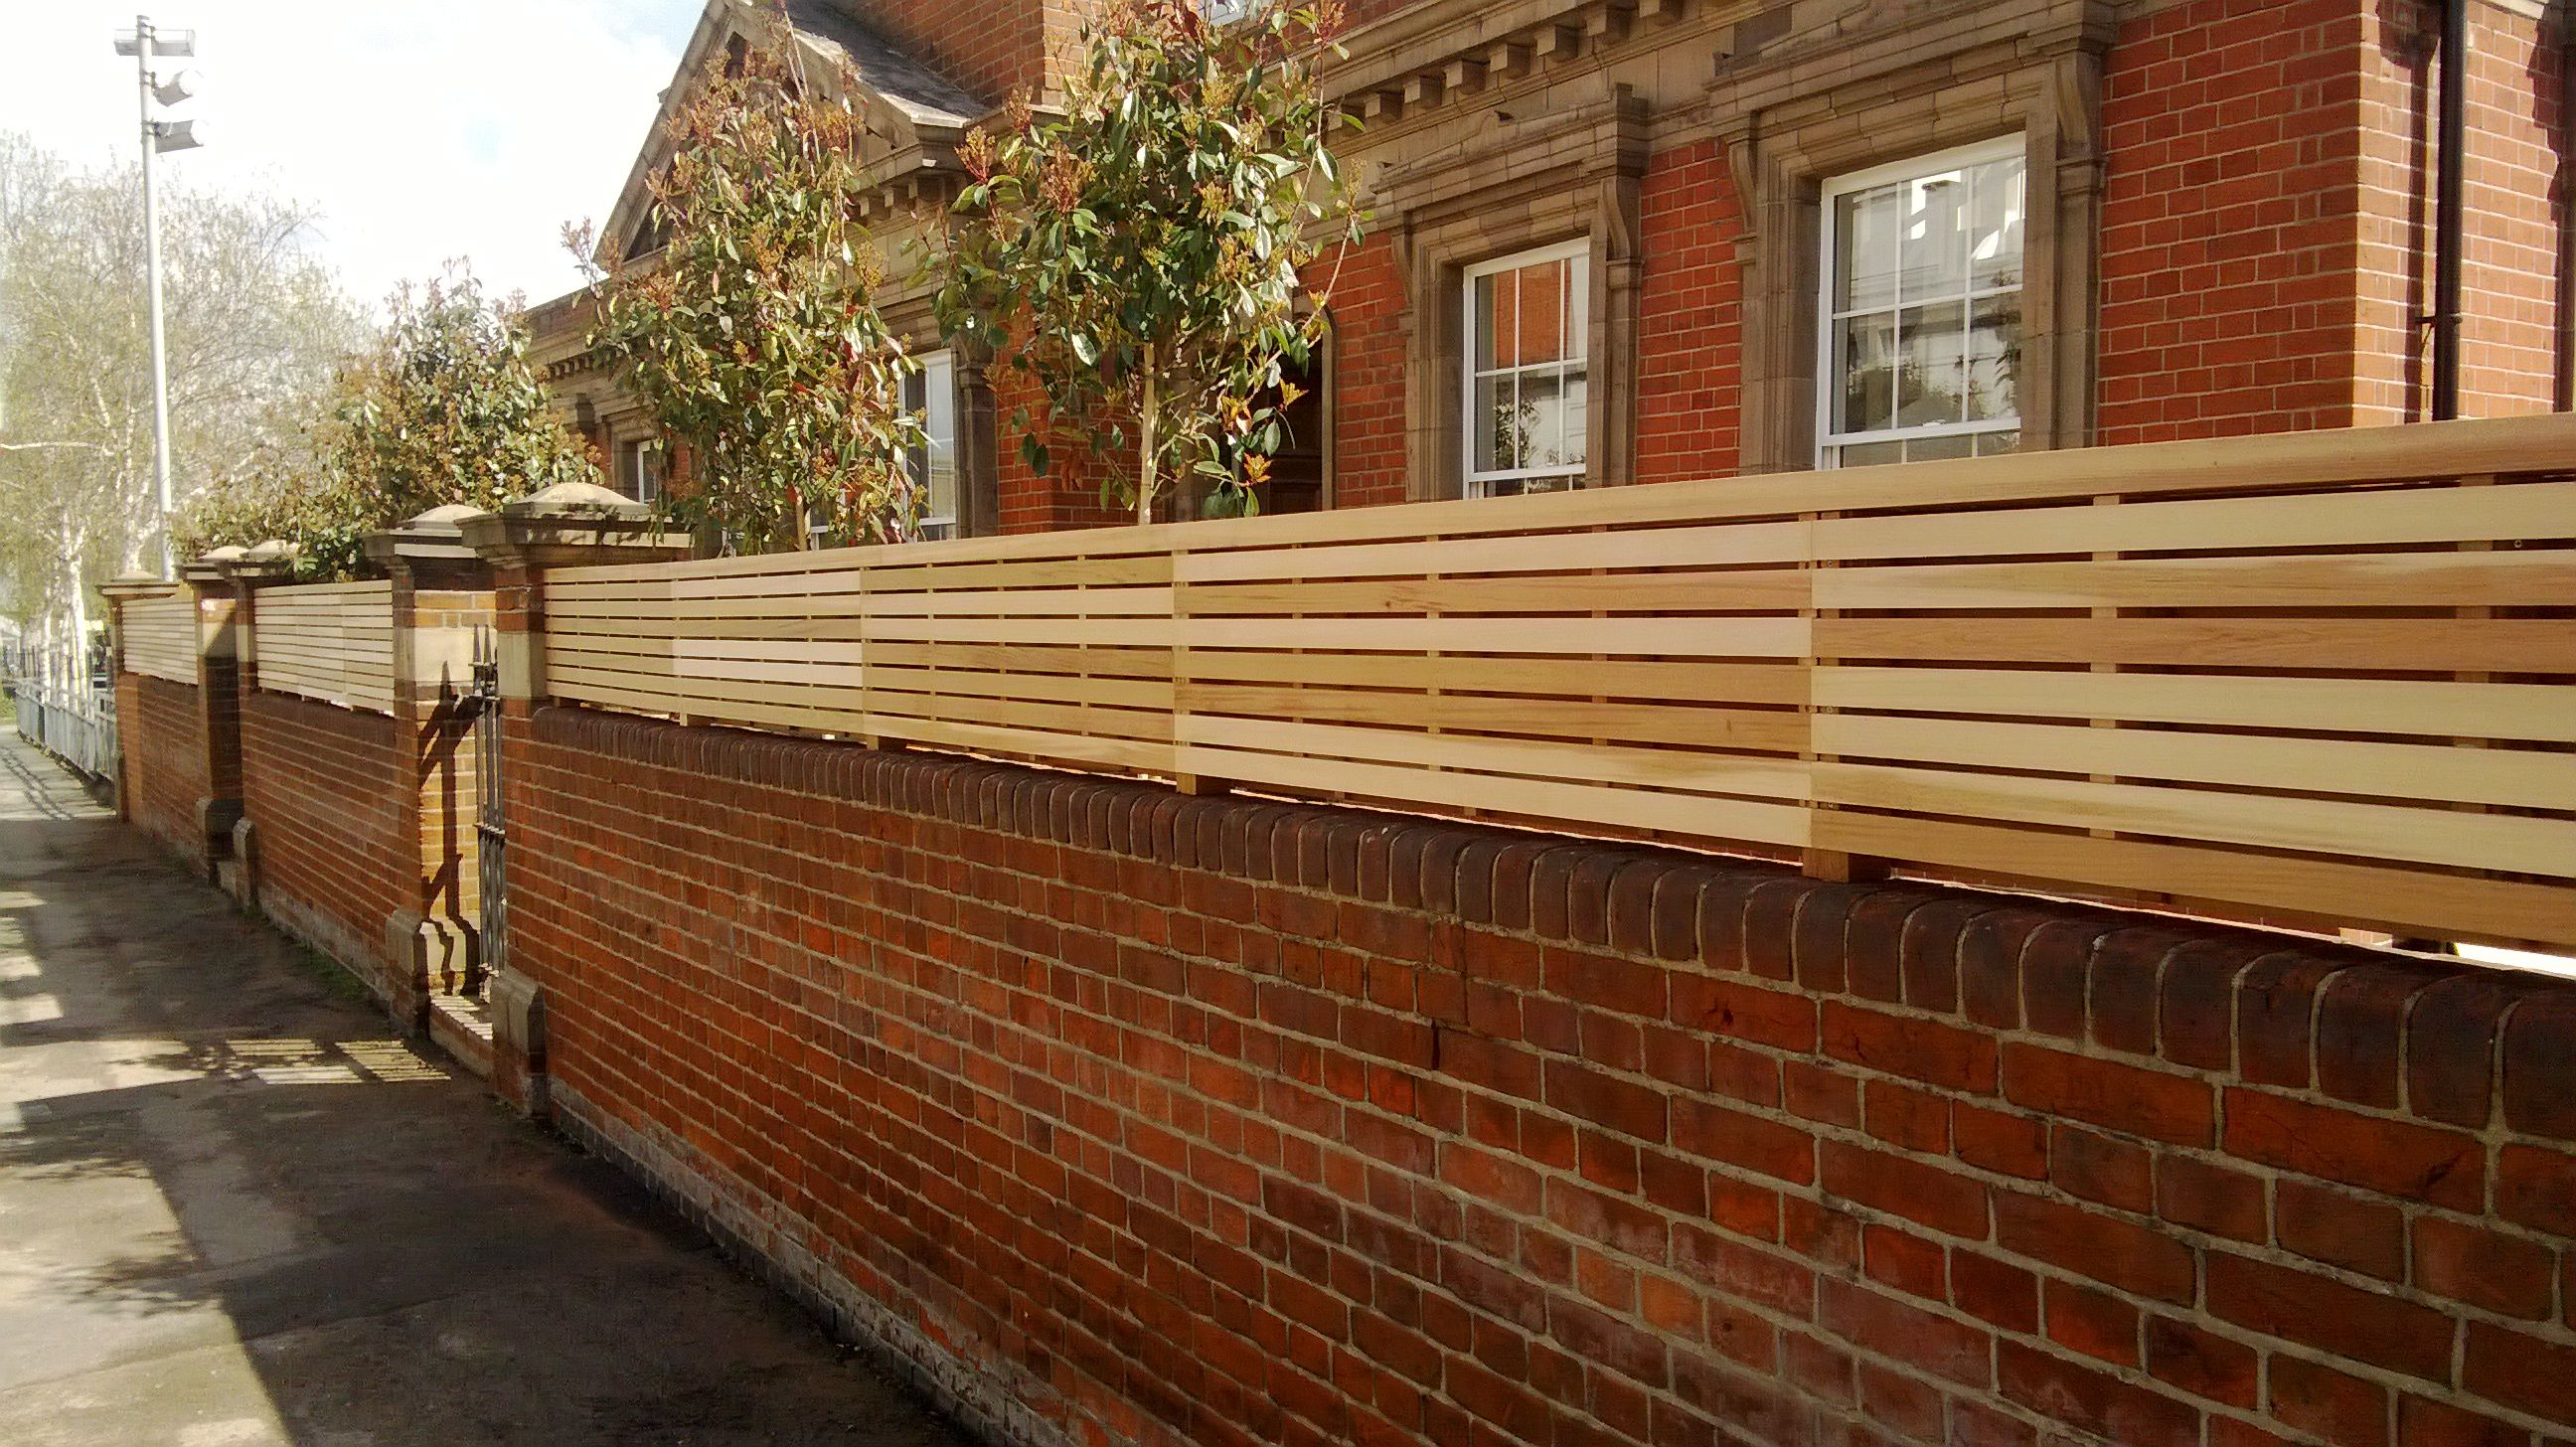 Slatted panels fixed to the top of a wall home ideas pinterest the garden trellis company manufacture bespoke gates gazebos garden furniture planters contemporary slatted panels and and many more garden joinery baanklon Images